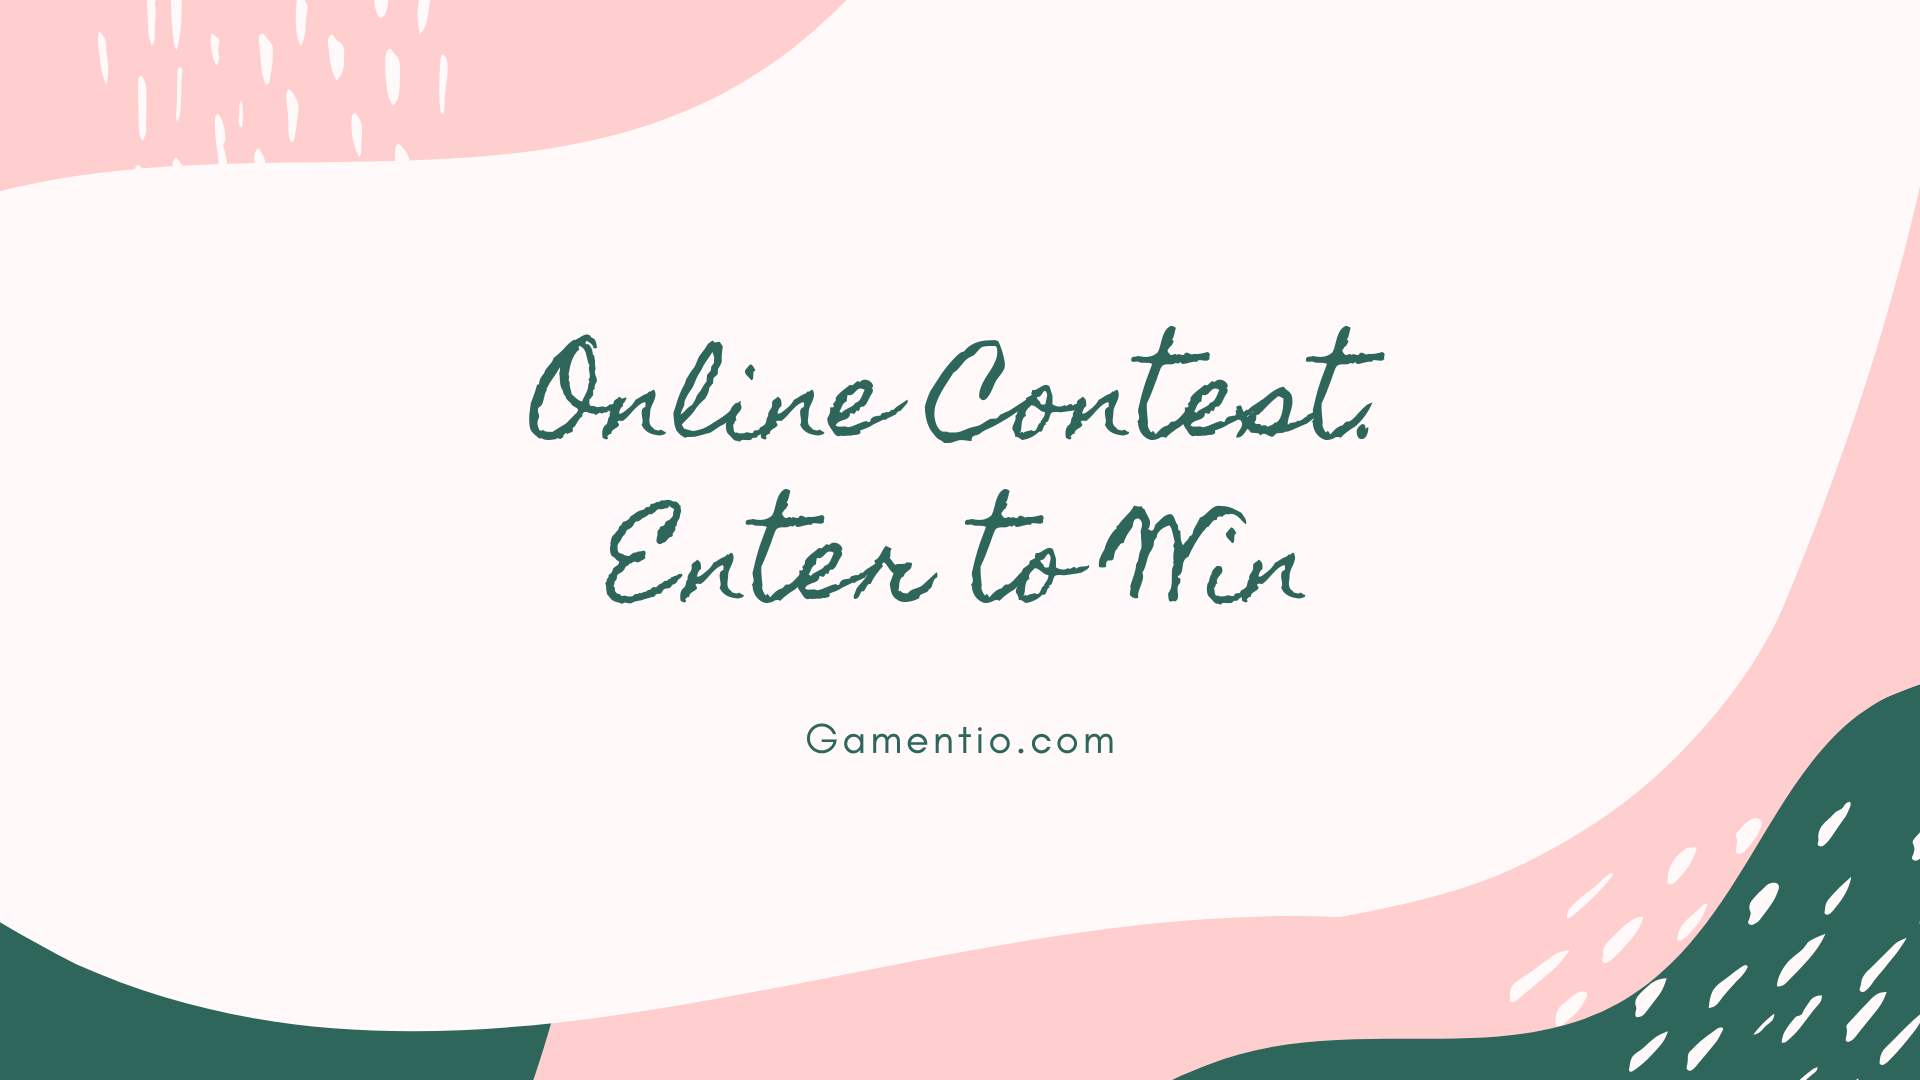 Play Gamentio Online Contest to Win Mobile Phones and other Exciting Prizes in India - The most popular platform to learn and play popular card games in India